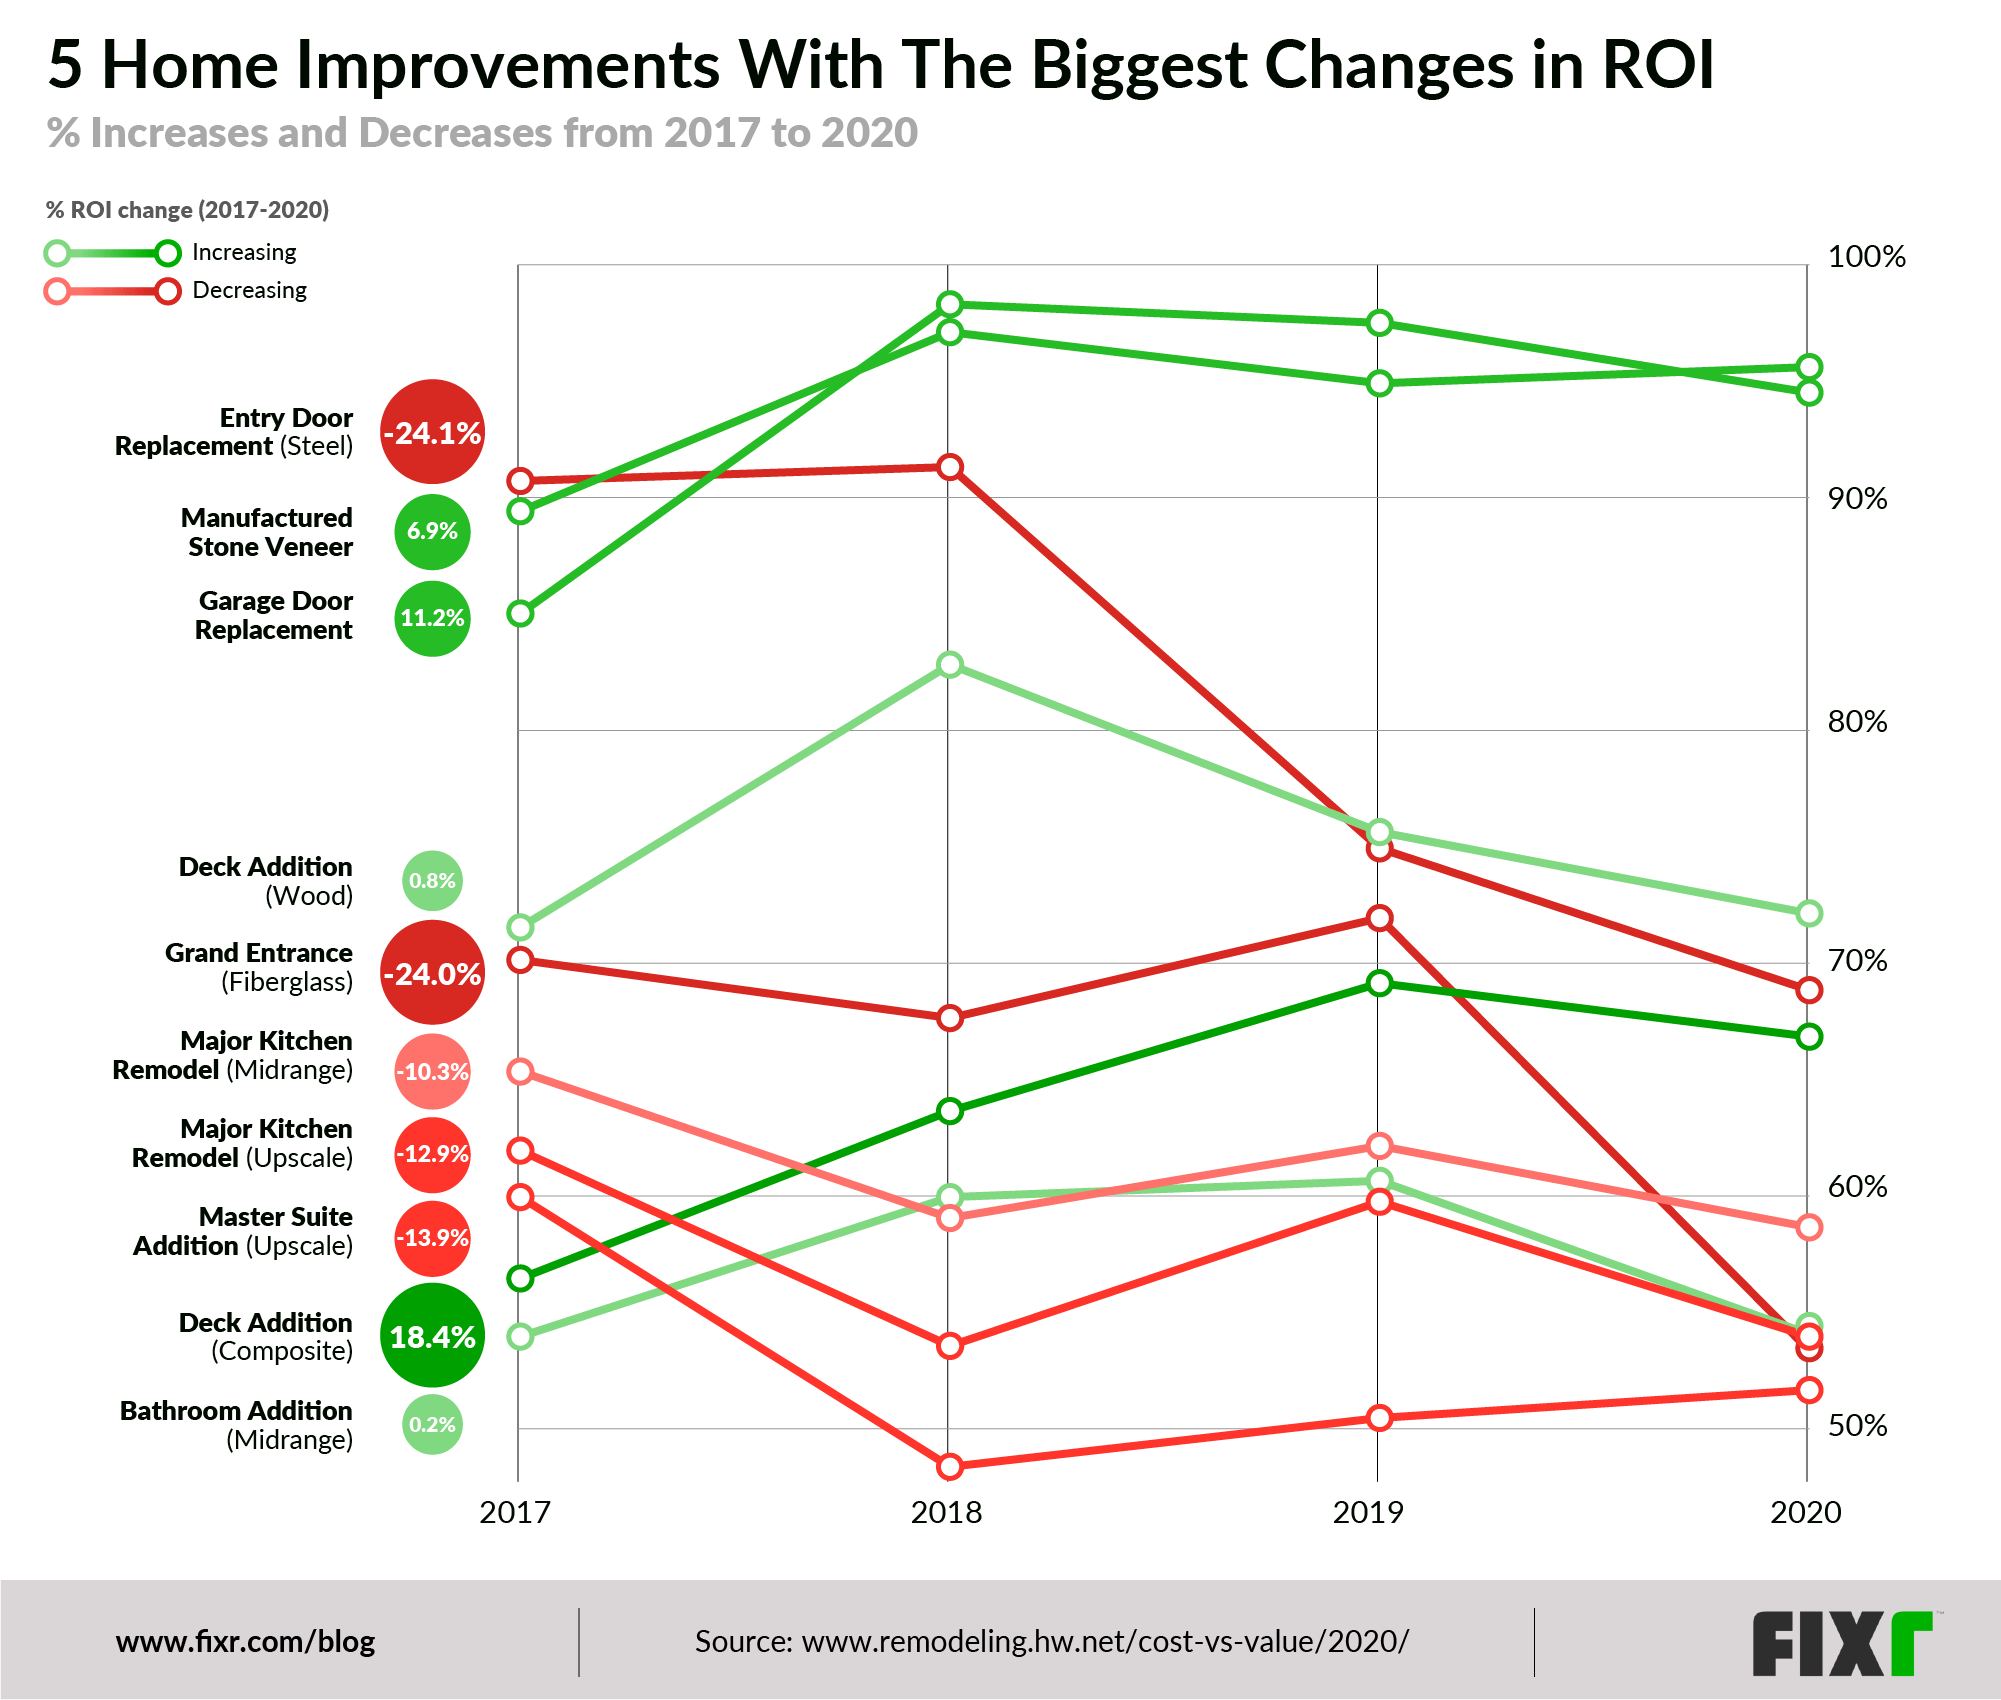 home improvements with the biggest changes in ROI